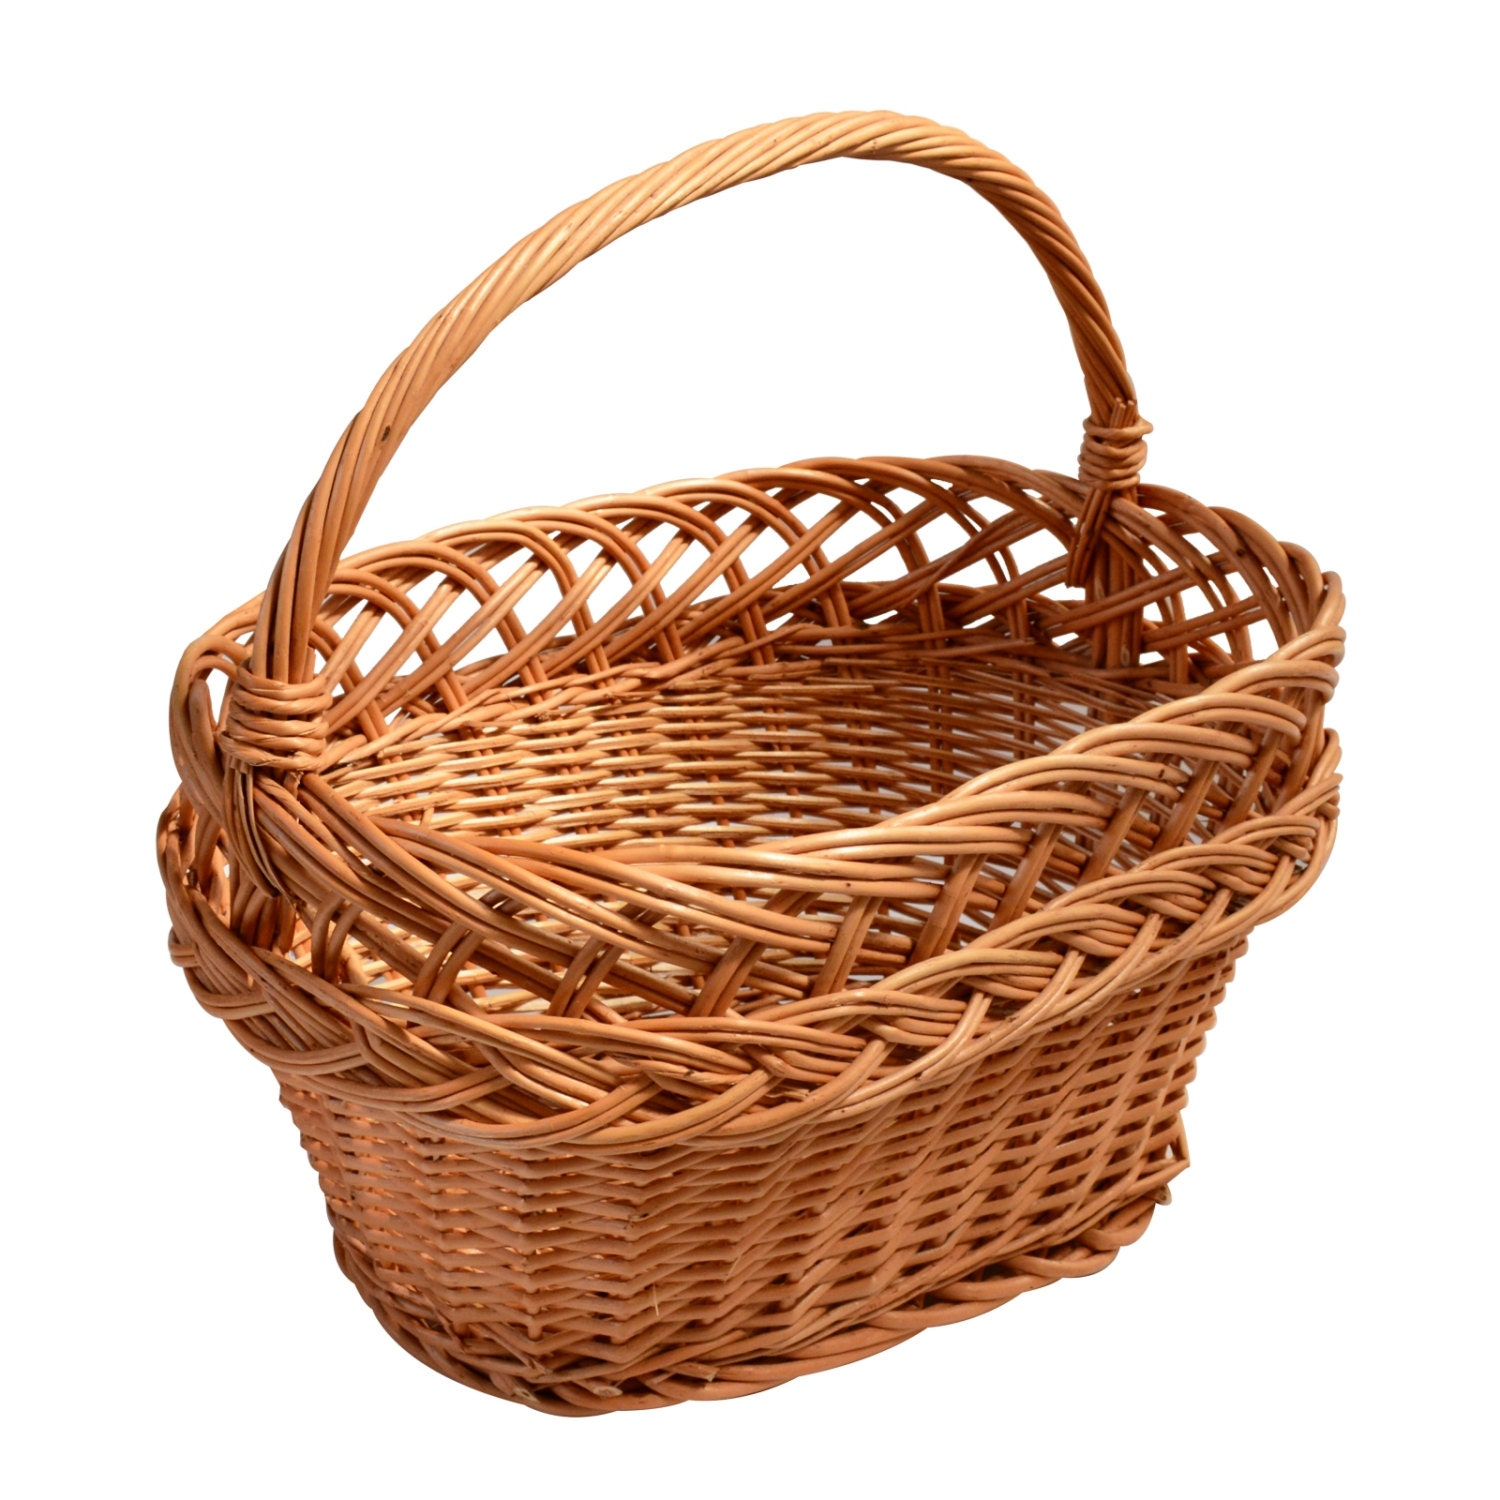 Woven Storage Baskets With Handles : Wicker basket with handle traditional storage by handmadegroup